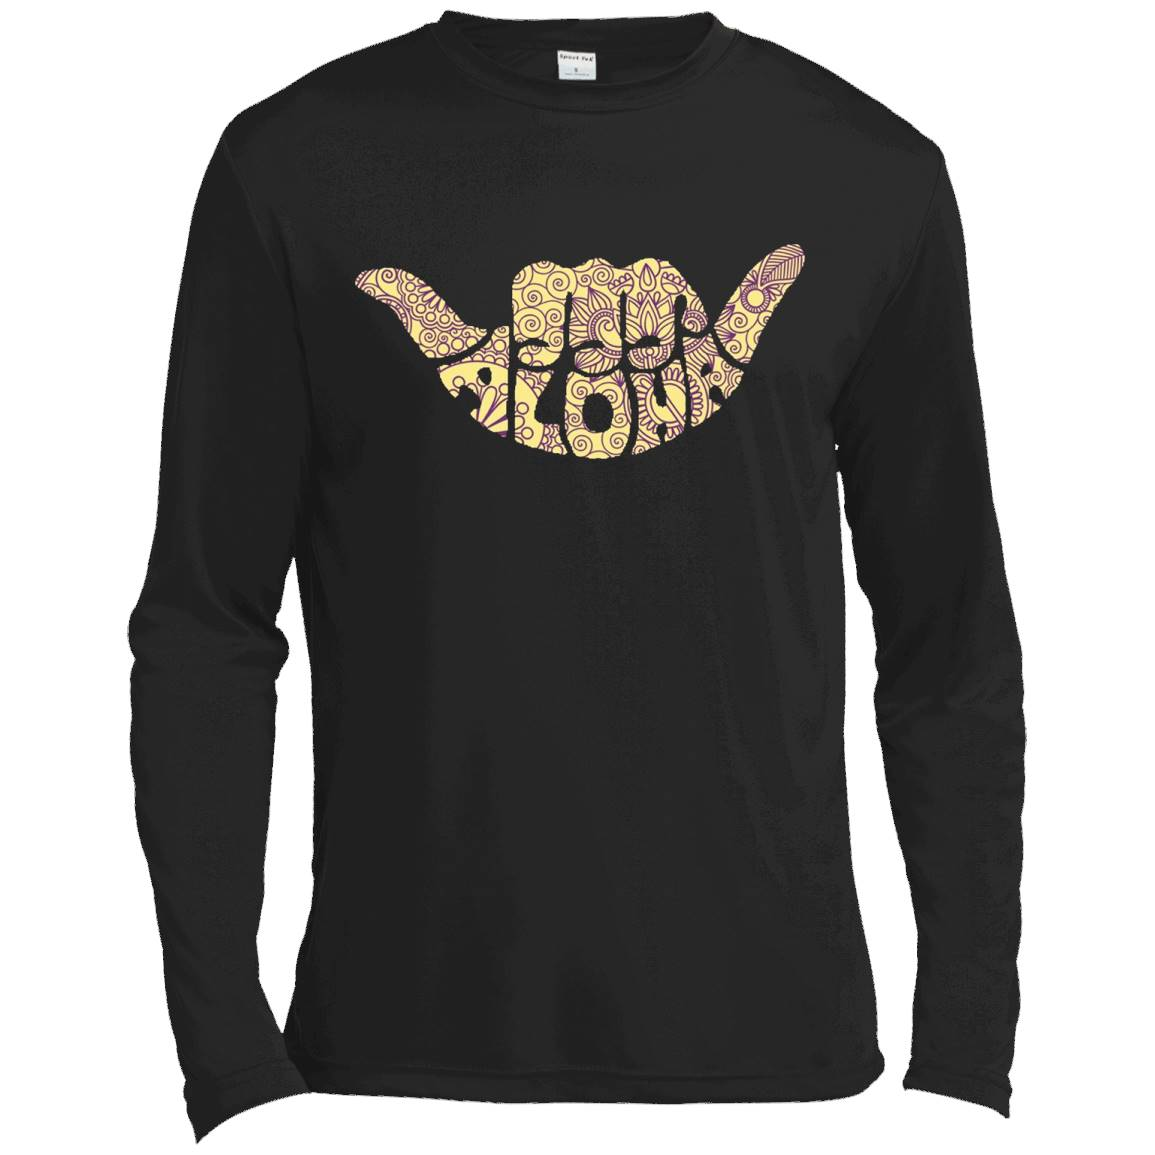 Aloha Sign T-Shirt – Long Sleeve Tee